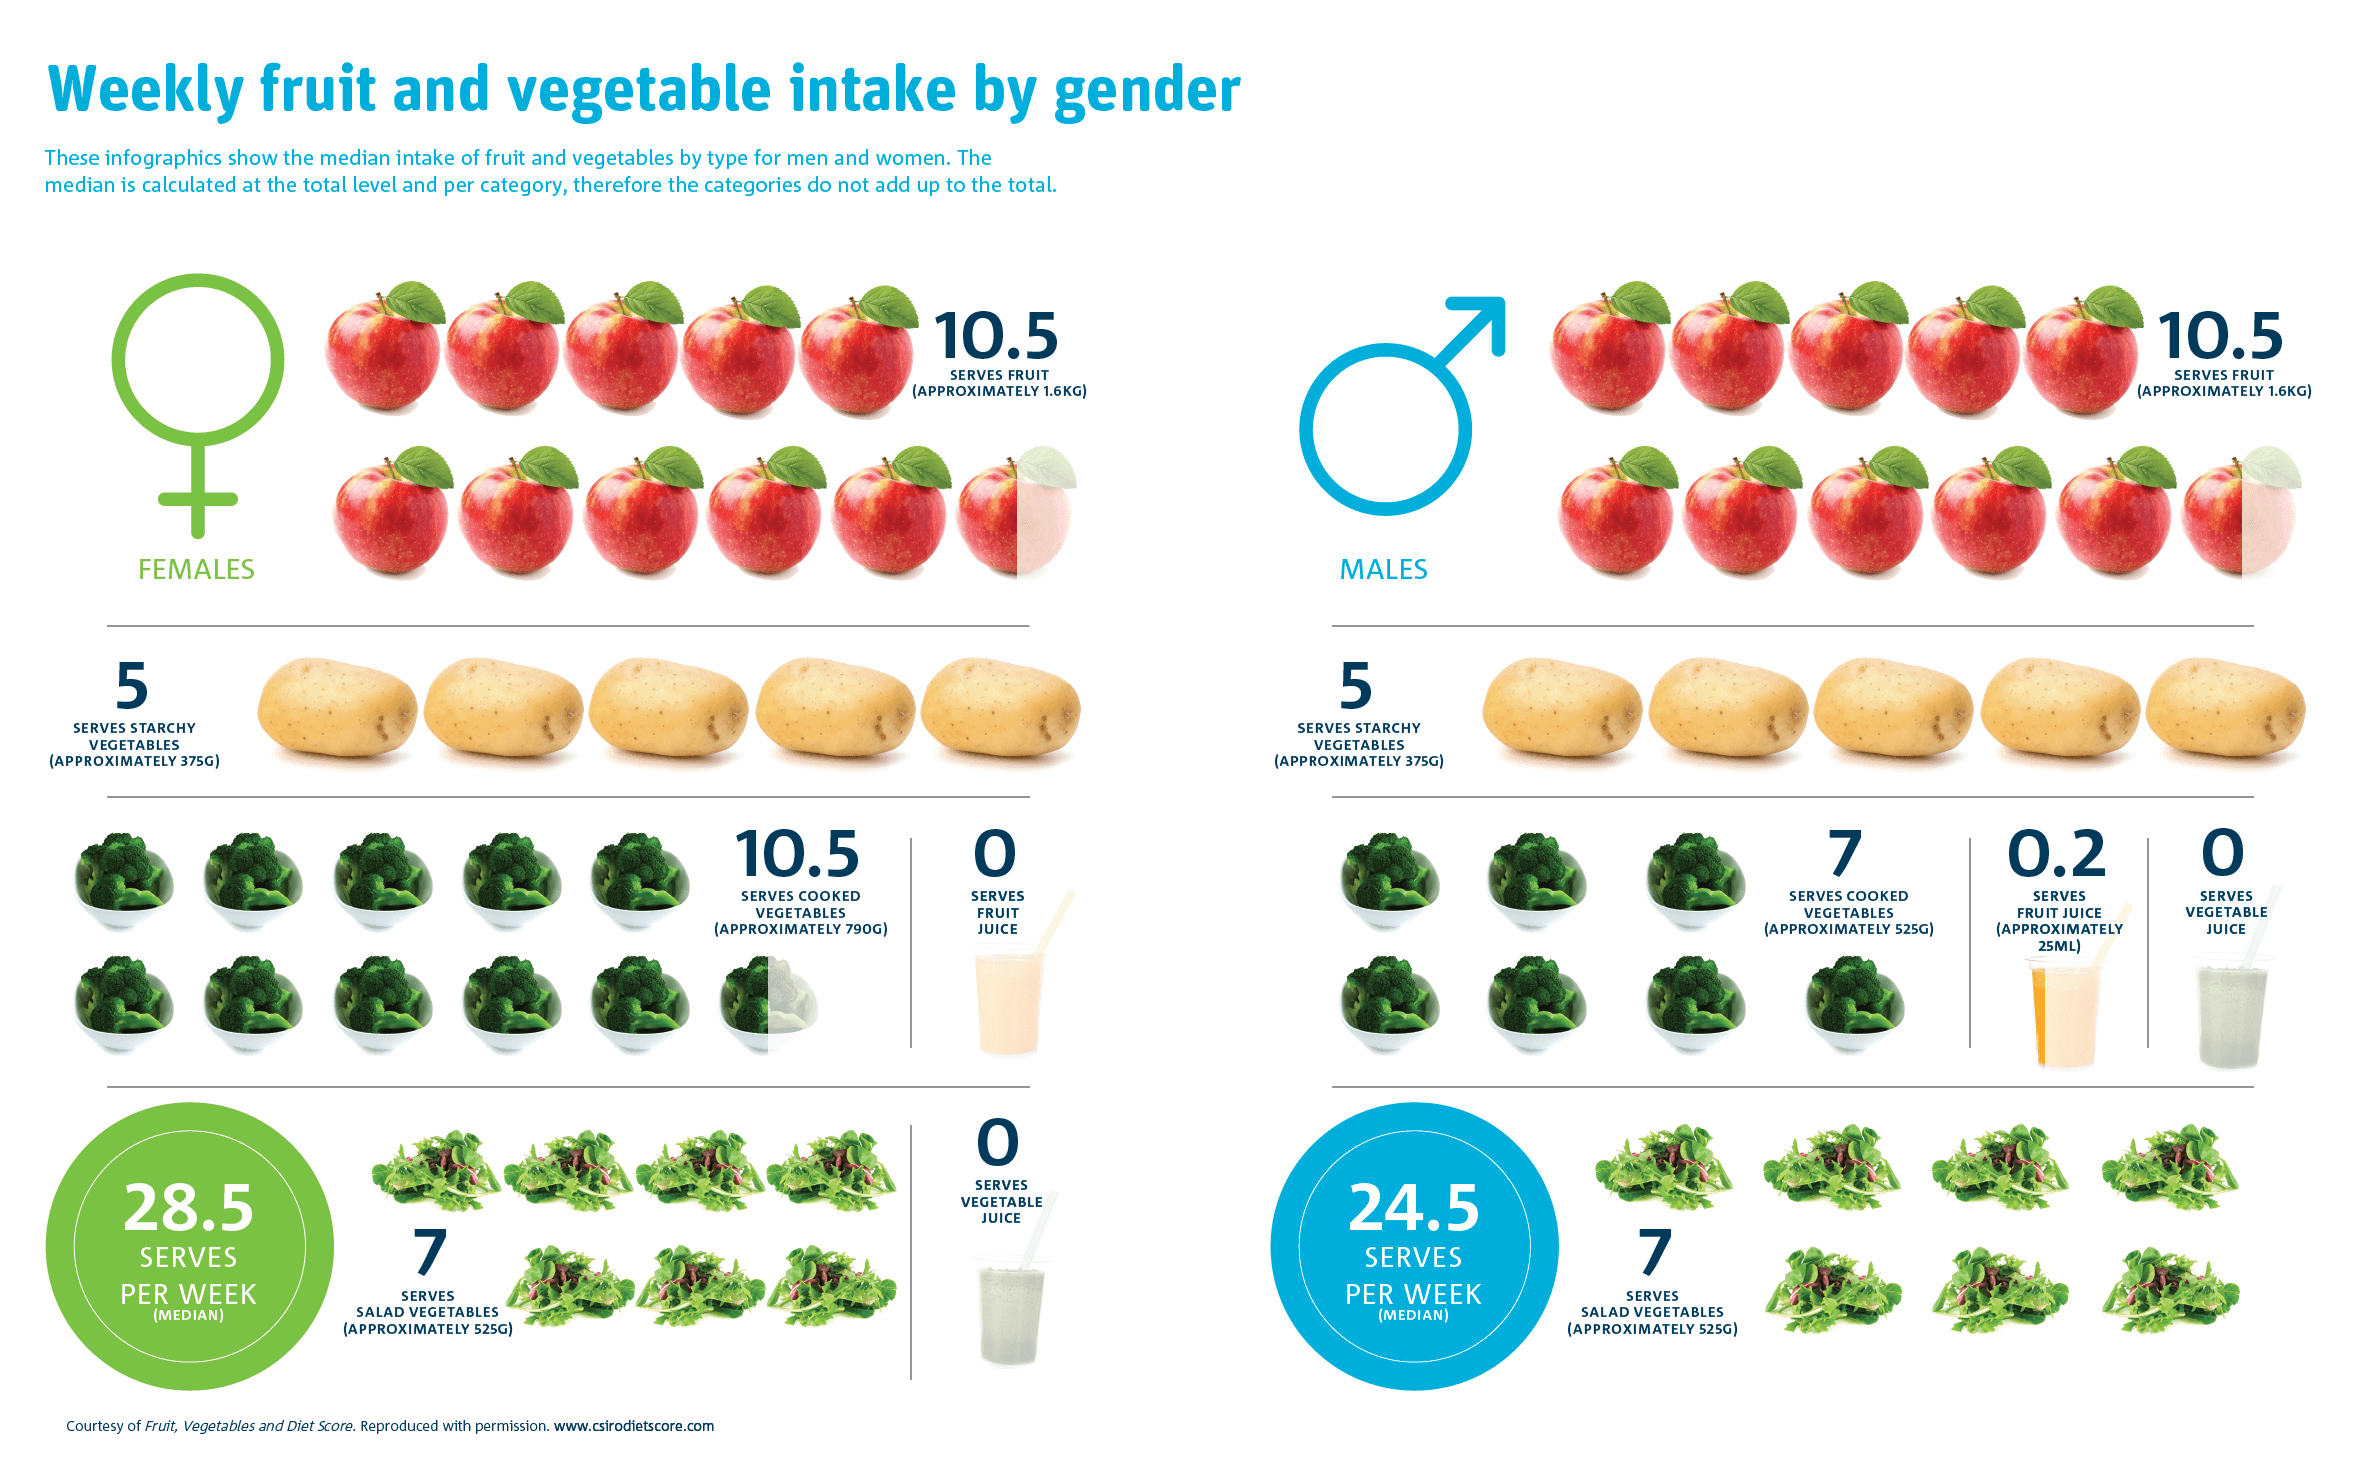 Graphic using fruit vegetables to indicate a summary of the weekly serves of fruit and vegetable intake by gender. Females:  fruit=10.5, starchy vegetables=5 and cooked vegetables=10.5. Males: fruit=10.5, starchy vegetables=5 and cooked vegetables=7.